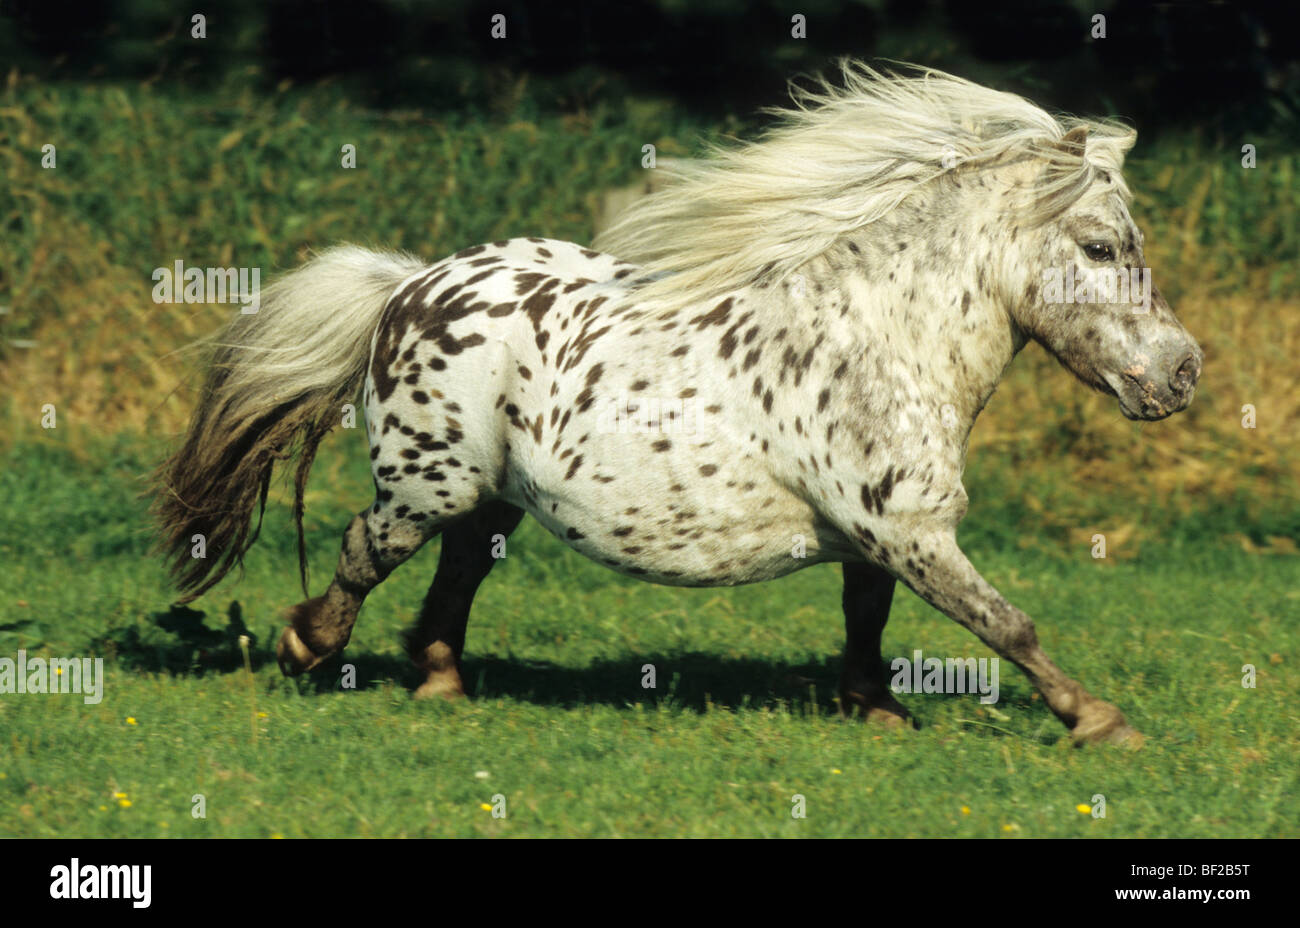 Mini-Shetlandpony (Equus caballus) in gallop over a meadow. - Stock Image